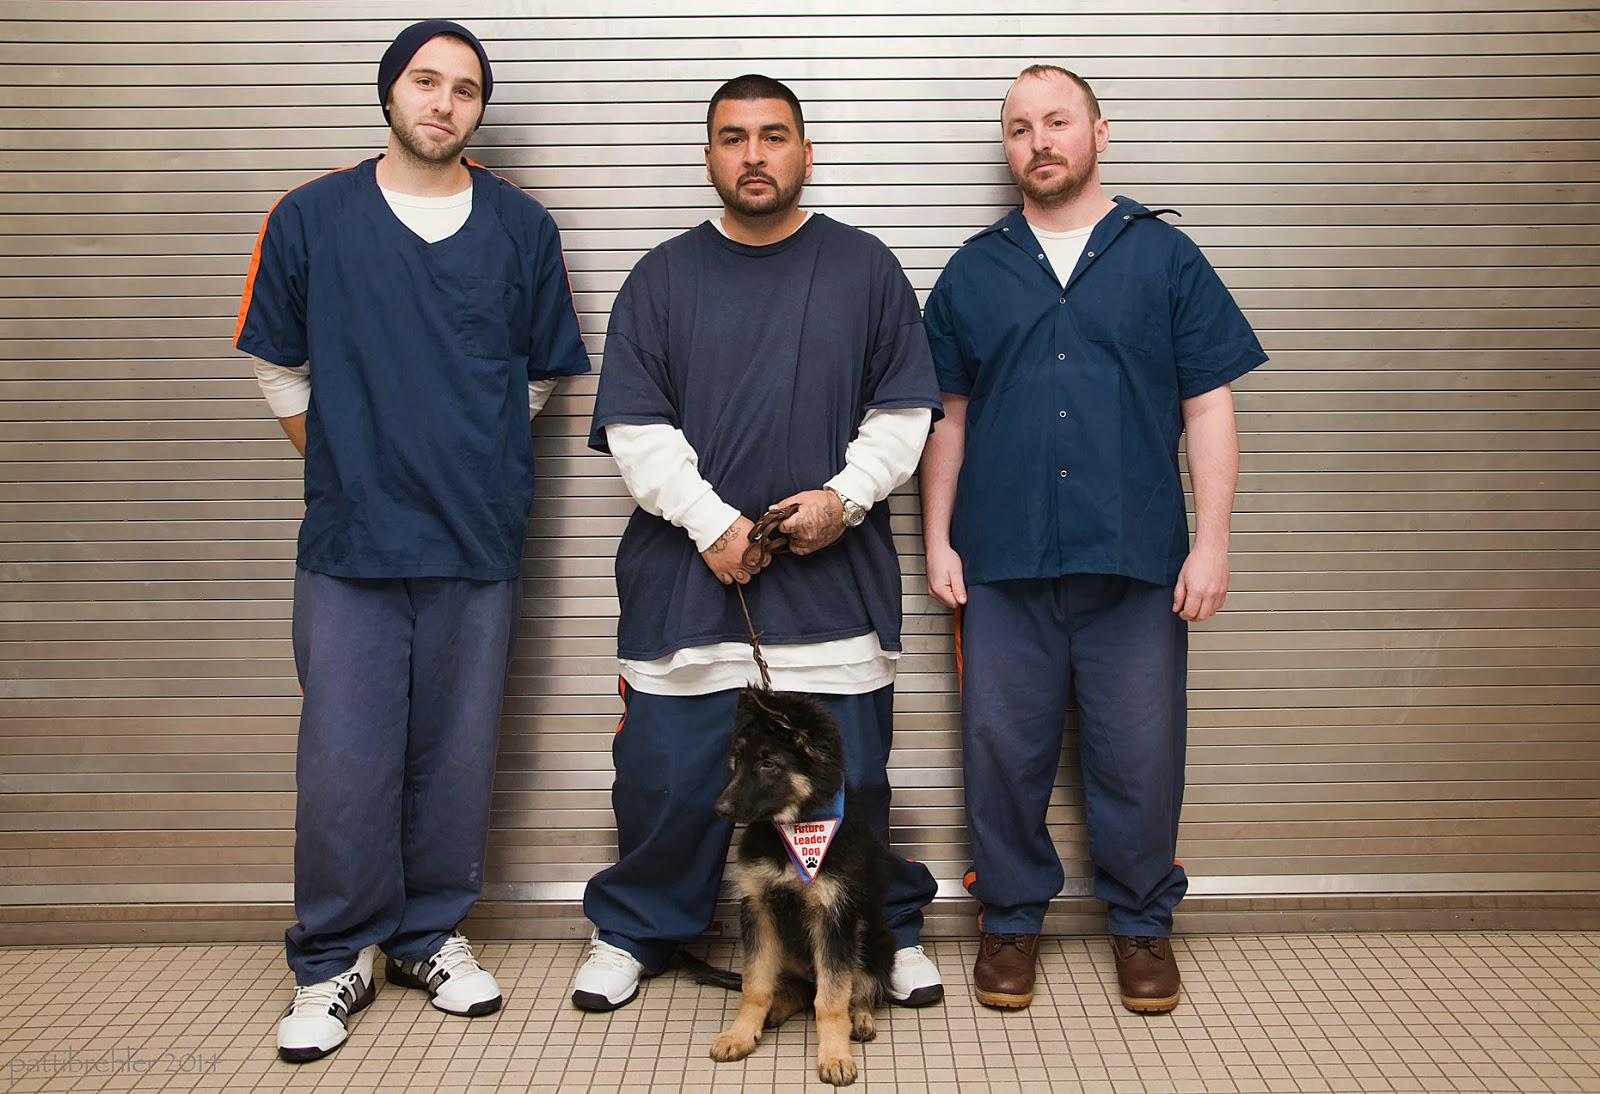 Three men are standing in front of a steel wall. They are wearing blue shirts and pants with white undershirts. The man on the left is wearing a blue knit hat. The one in the middle is holding hte leash of a german shepherd puppy that is sitting on the floor in front of him. The puppy has the blue bandana on.